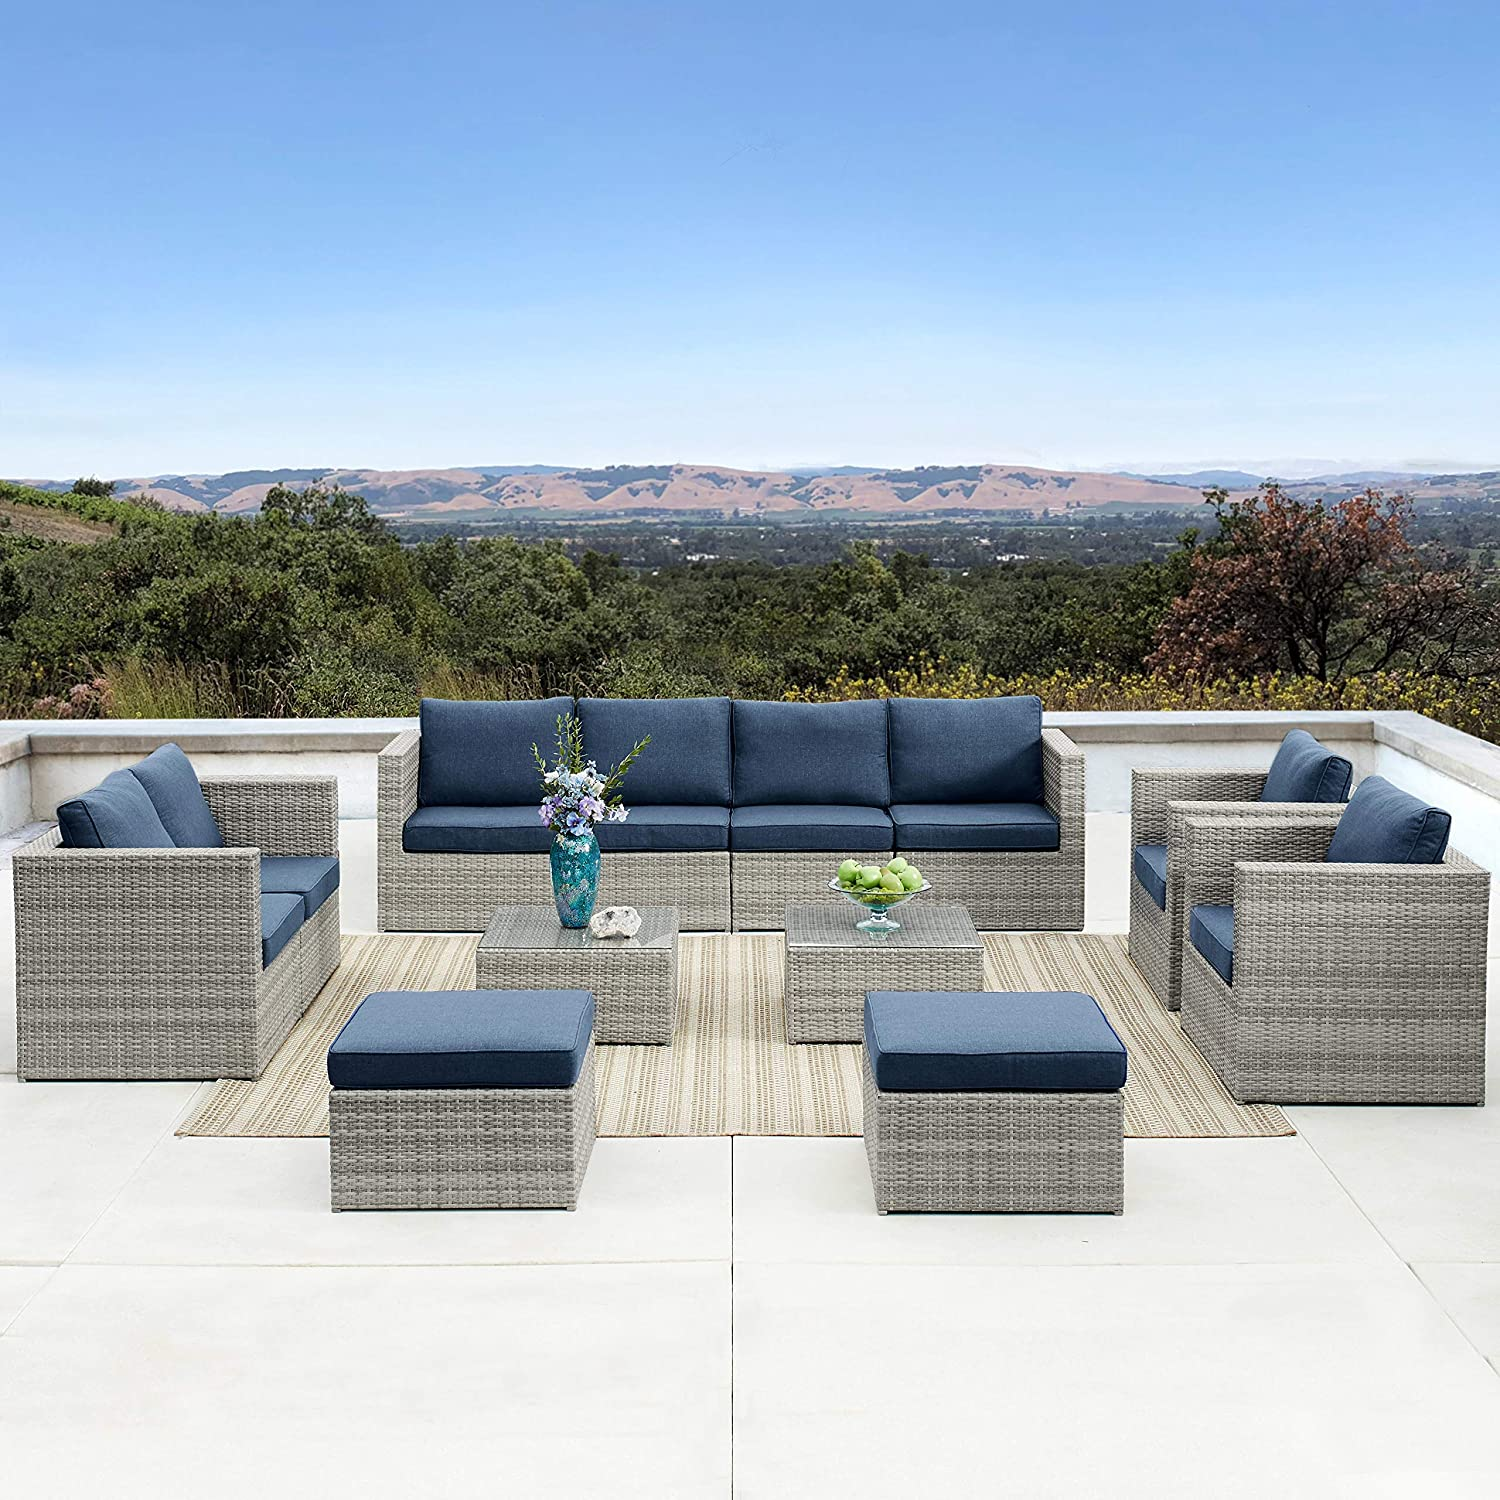 Outdoor Furniture 12 Pieces Garden Patio Sofa Set Wicker Rattan Sectional with Cushions No Assembly Required Aluminum Frame